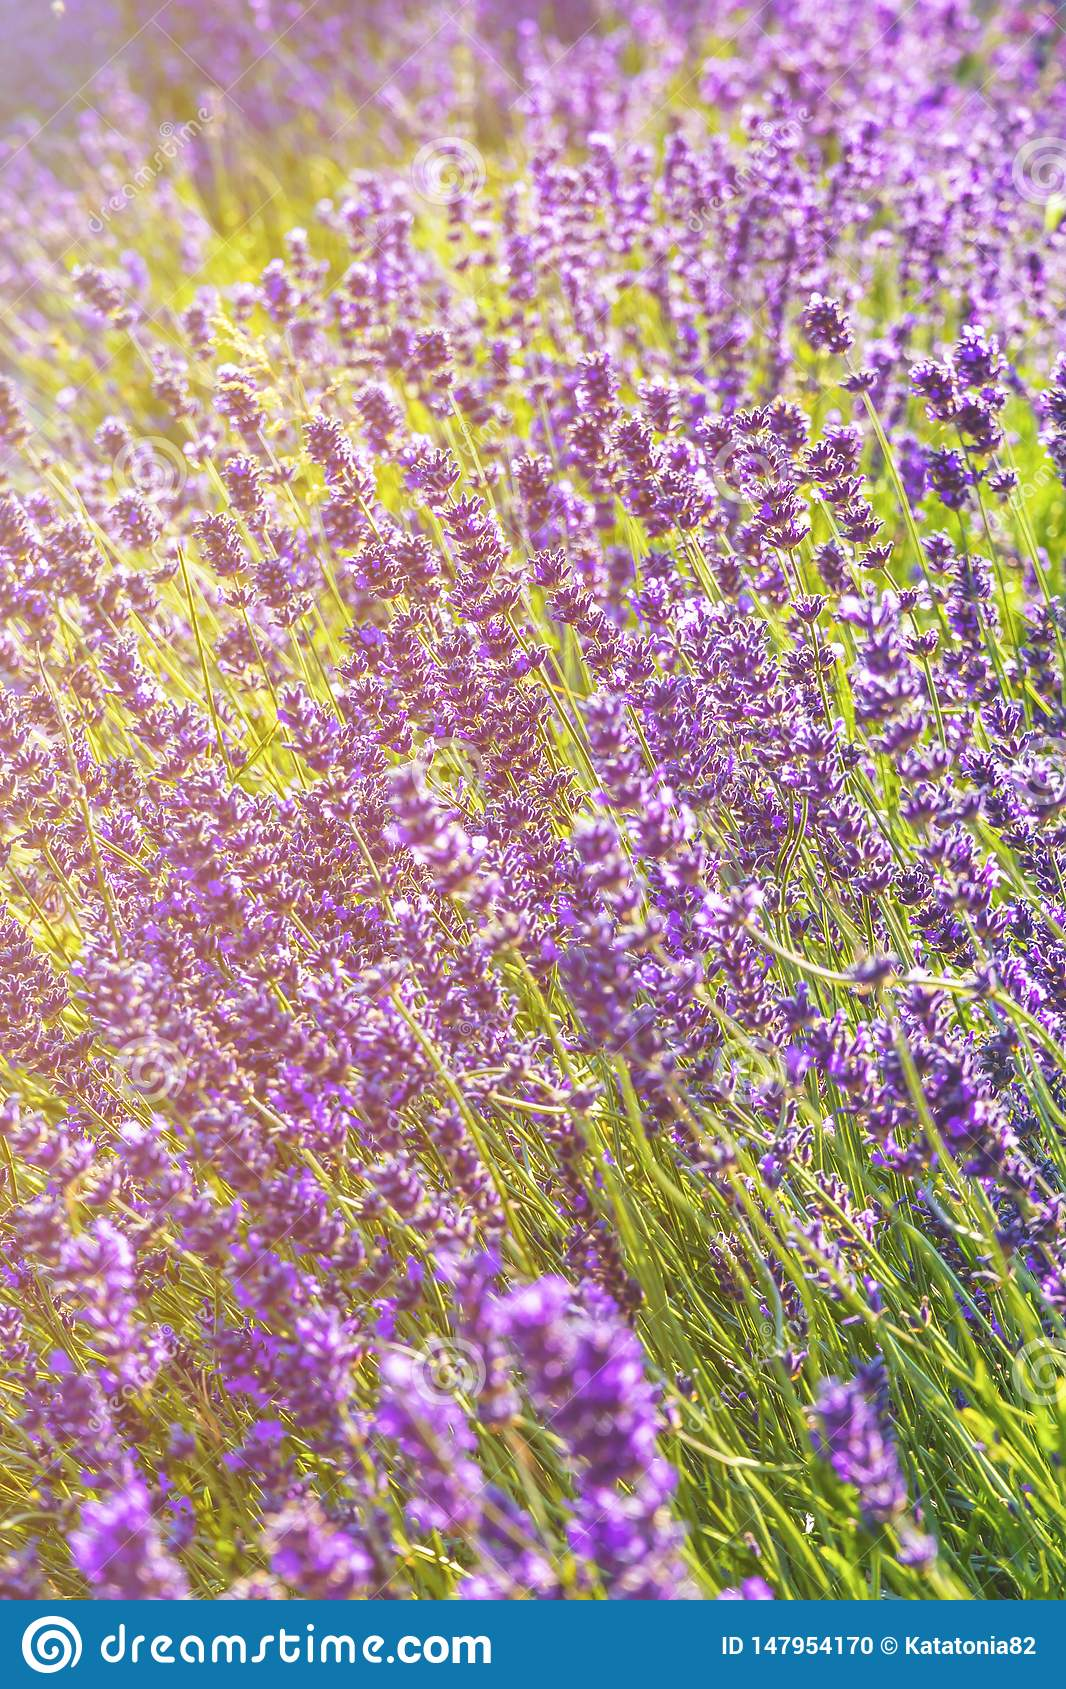 Lavender flowers at sunlight in a soft focus